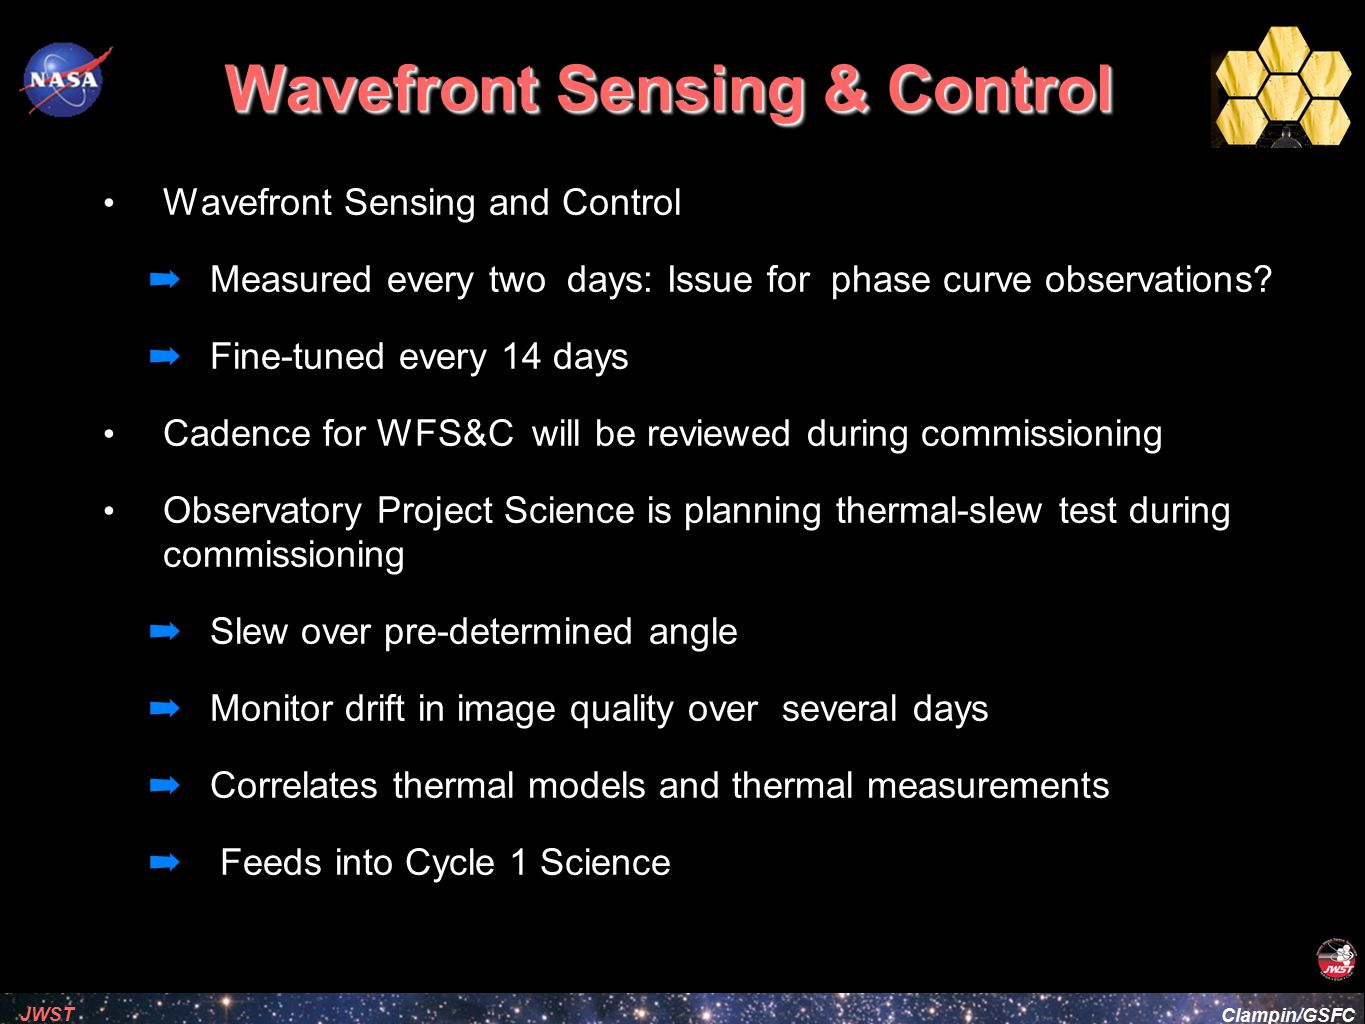 Clampin/GSFC JWST Event-driven Operations Fixed-time constraints are allowed ➡ 'PHASE' constraint allows any of several transits for a given system to be observed at a specified orbital phase (scheduling flexibility) ➡ Start of exposures uncertain to 5 minutes Timeline Scenarios (TBR – checking w/ Wayne Kinzel) ➡ Failed visit(s) prior to transit ➡ Over-long visit(s) prior to transit